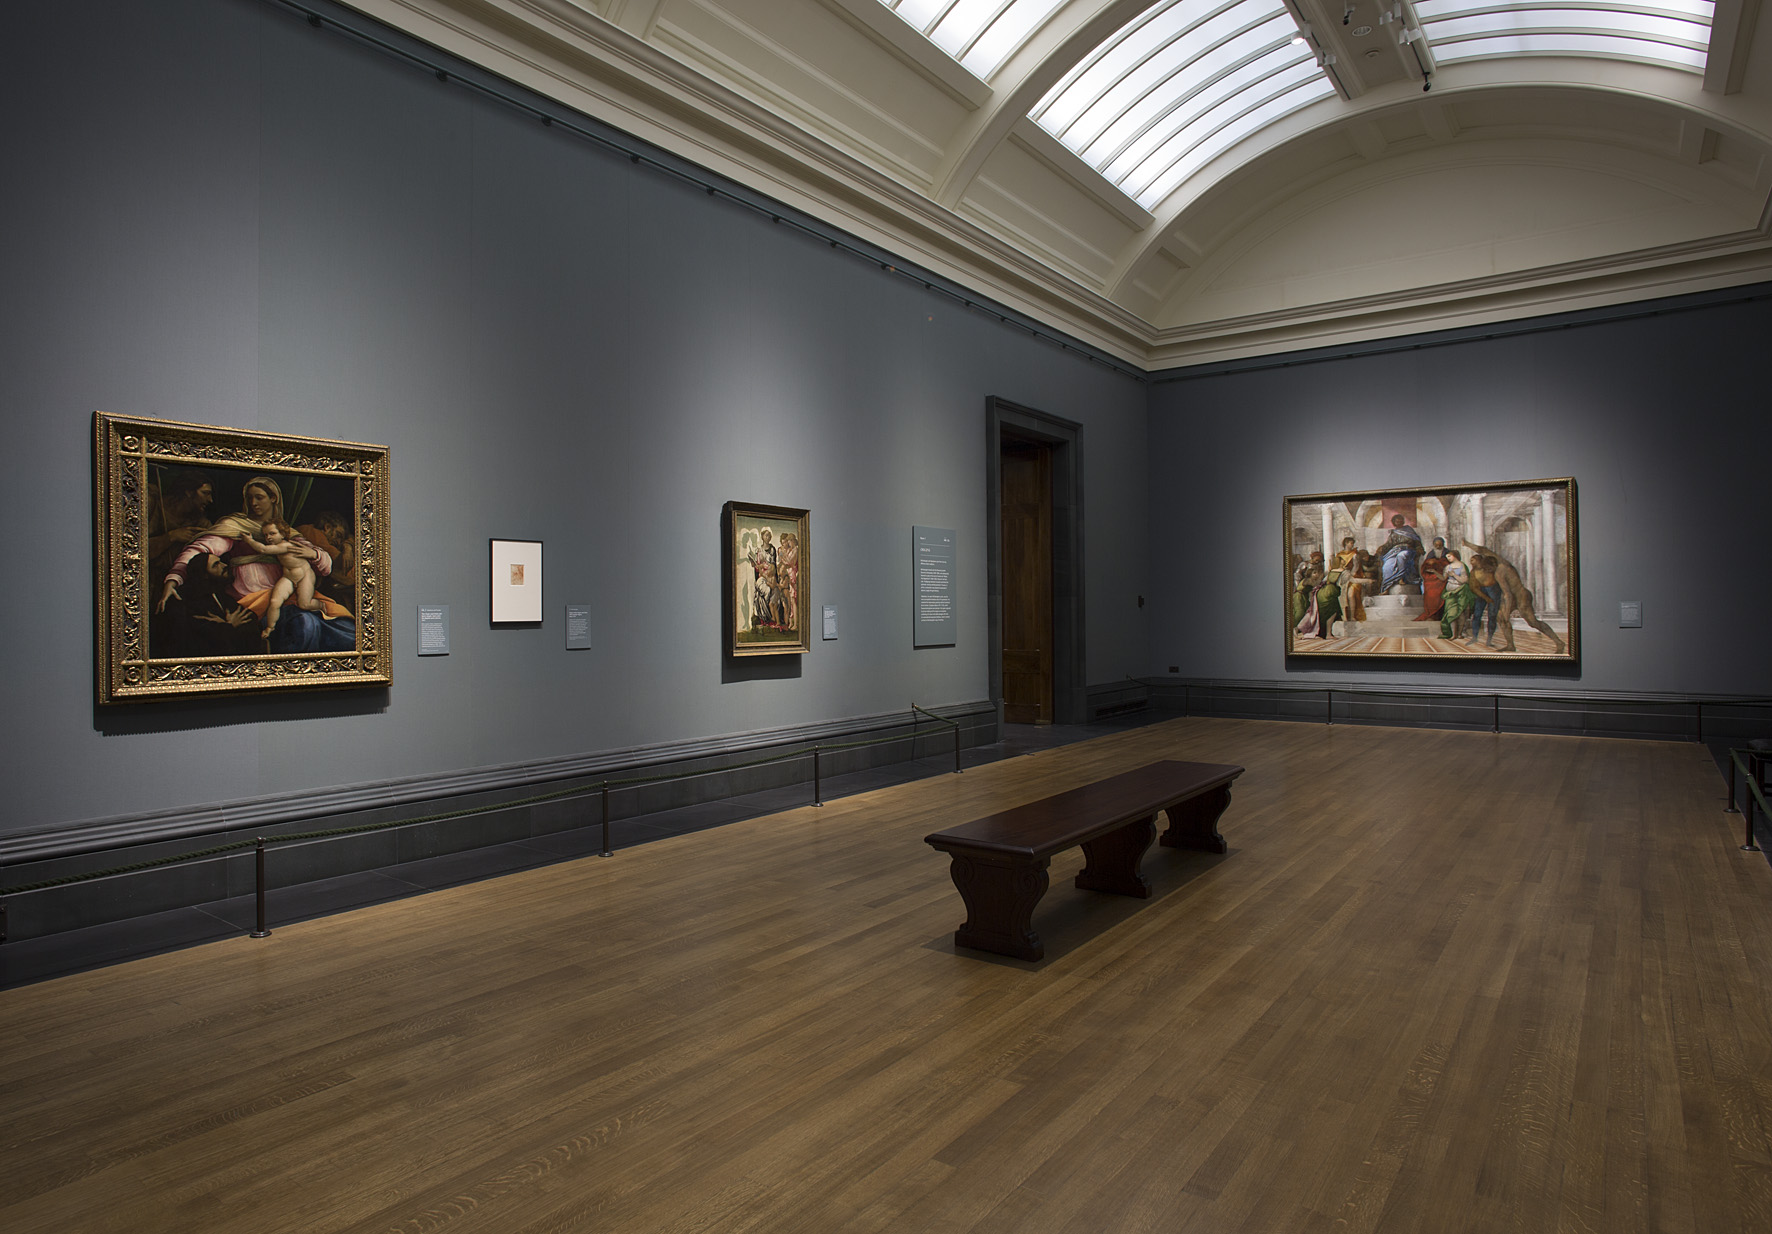 Room one, showing 'Manchester Madonna' and 'Judgement of Solomon'